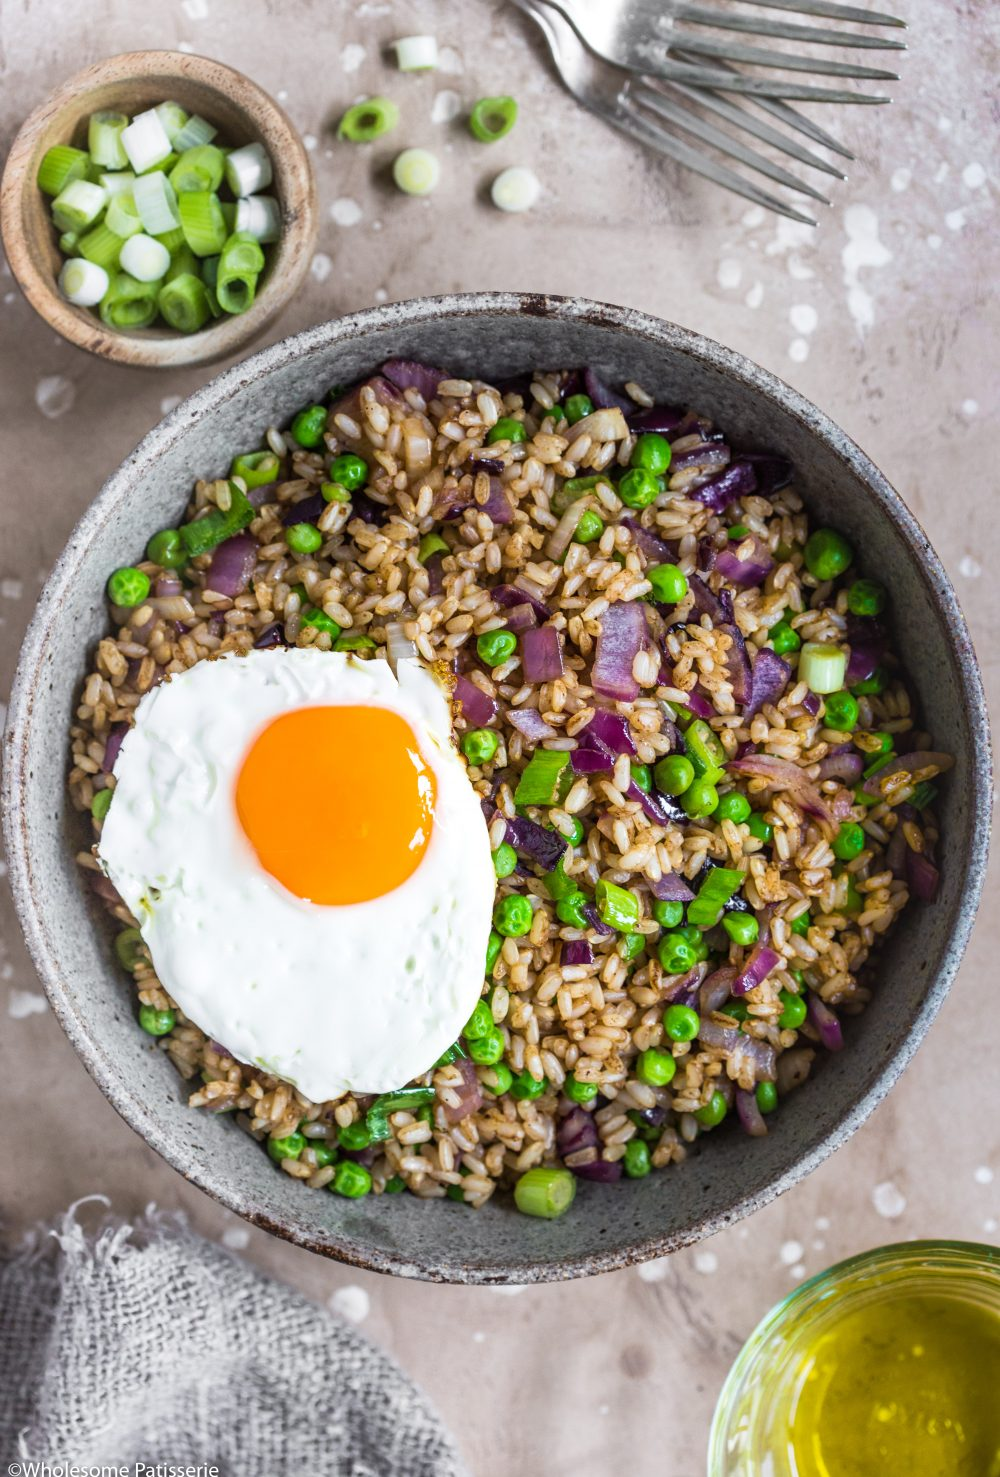 Brown Fried Rice! Simple flavoursome and healthy fried rice perfect for weekly night dinners! #friedrice #rice #dinner #glutenfree